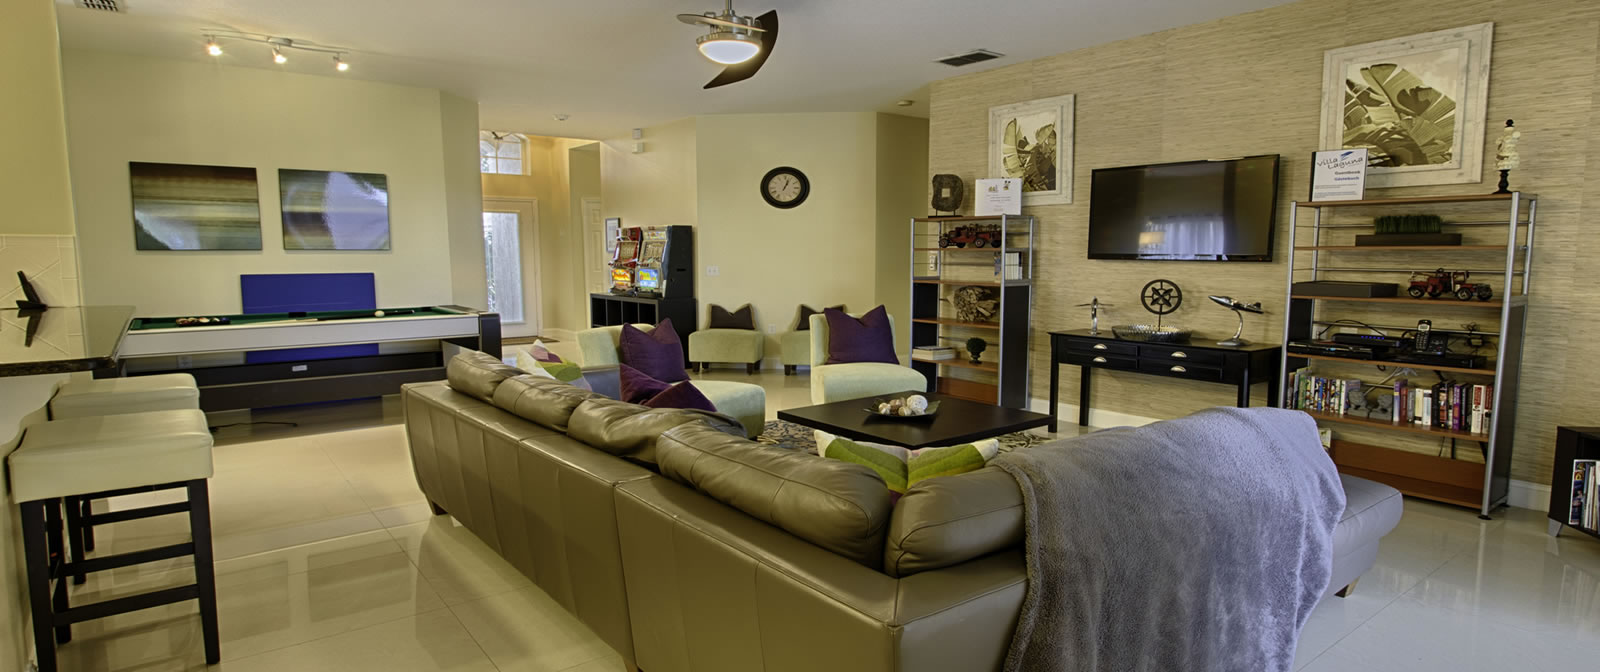 luxury vacation home spacious living room & Orlando Vacation Homes - Luxury Vacation Rentals in FL